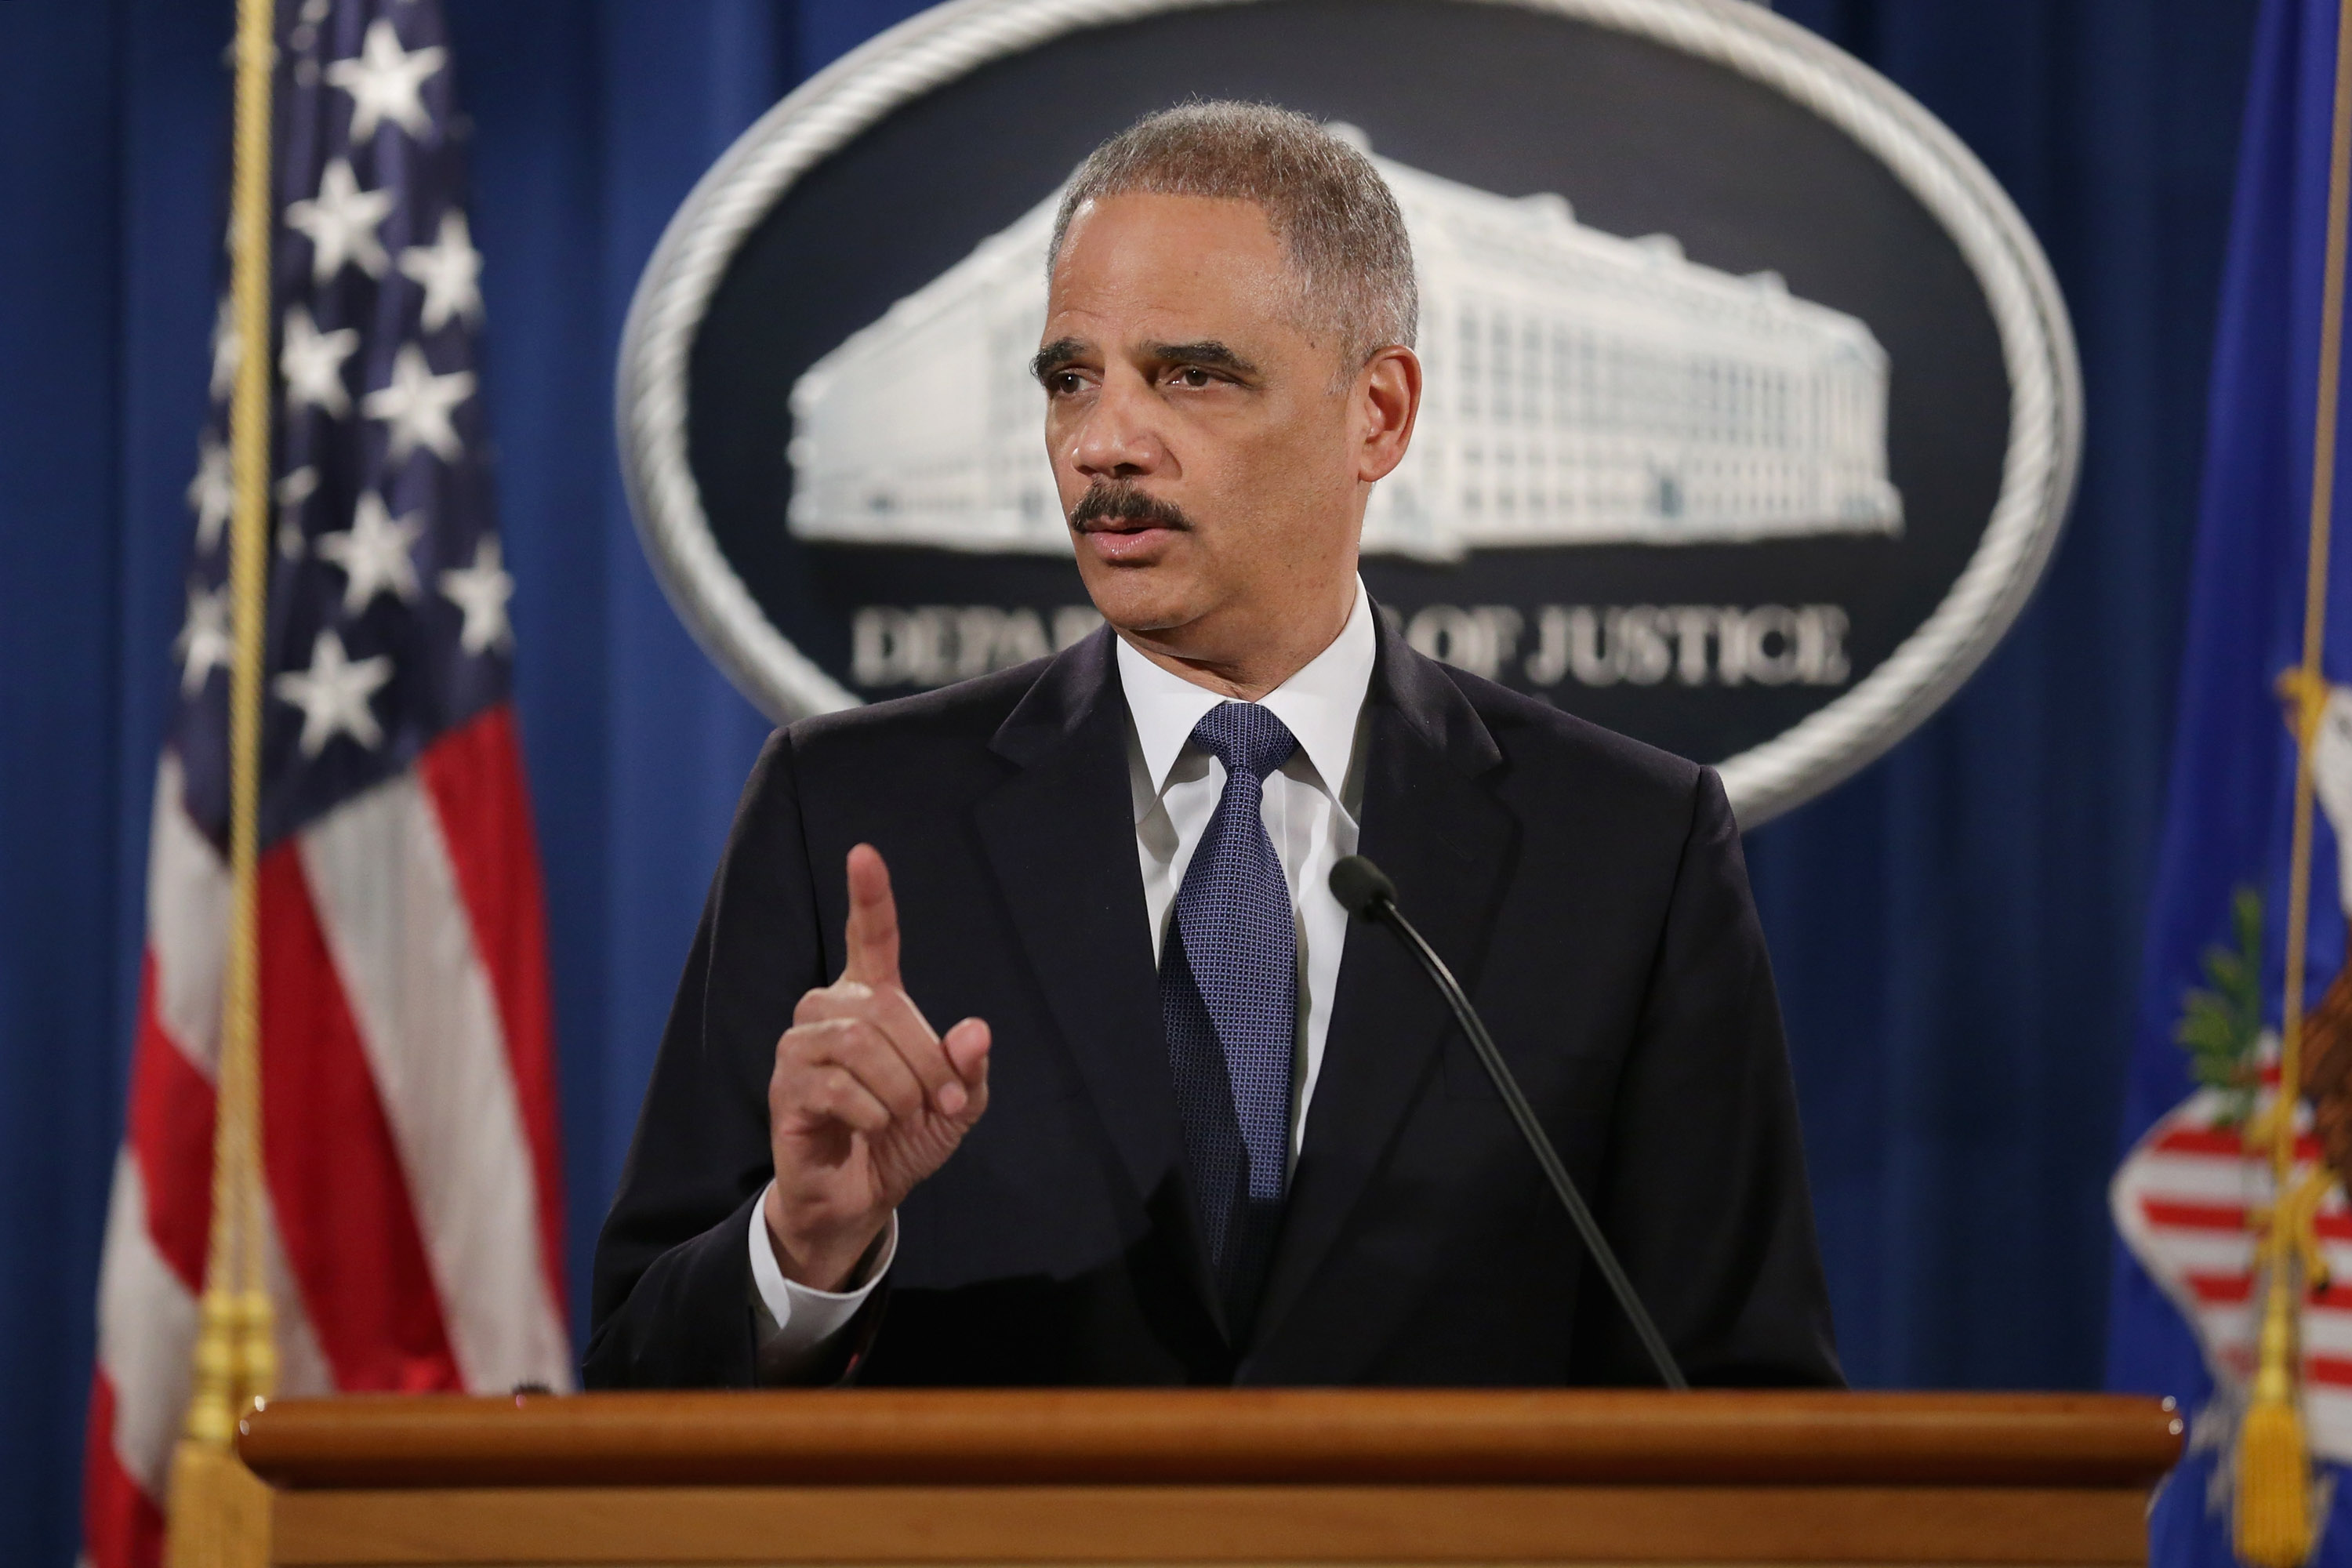 Attorney General Eric Holder delivers remarks about the Justice Department's findings related to two investigations in Ferguson, Missouri, at the Robert F. Kennedy Department of Justice Building March 4, 2015 in Washington, DC.